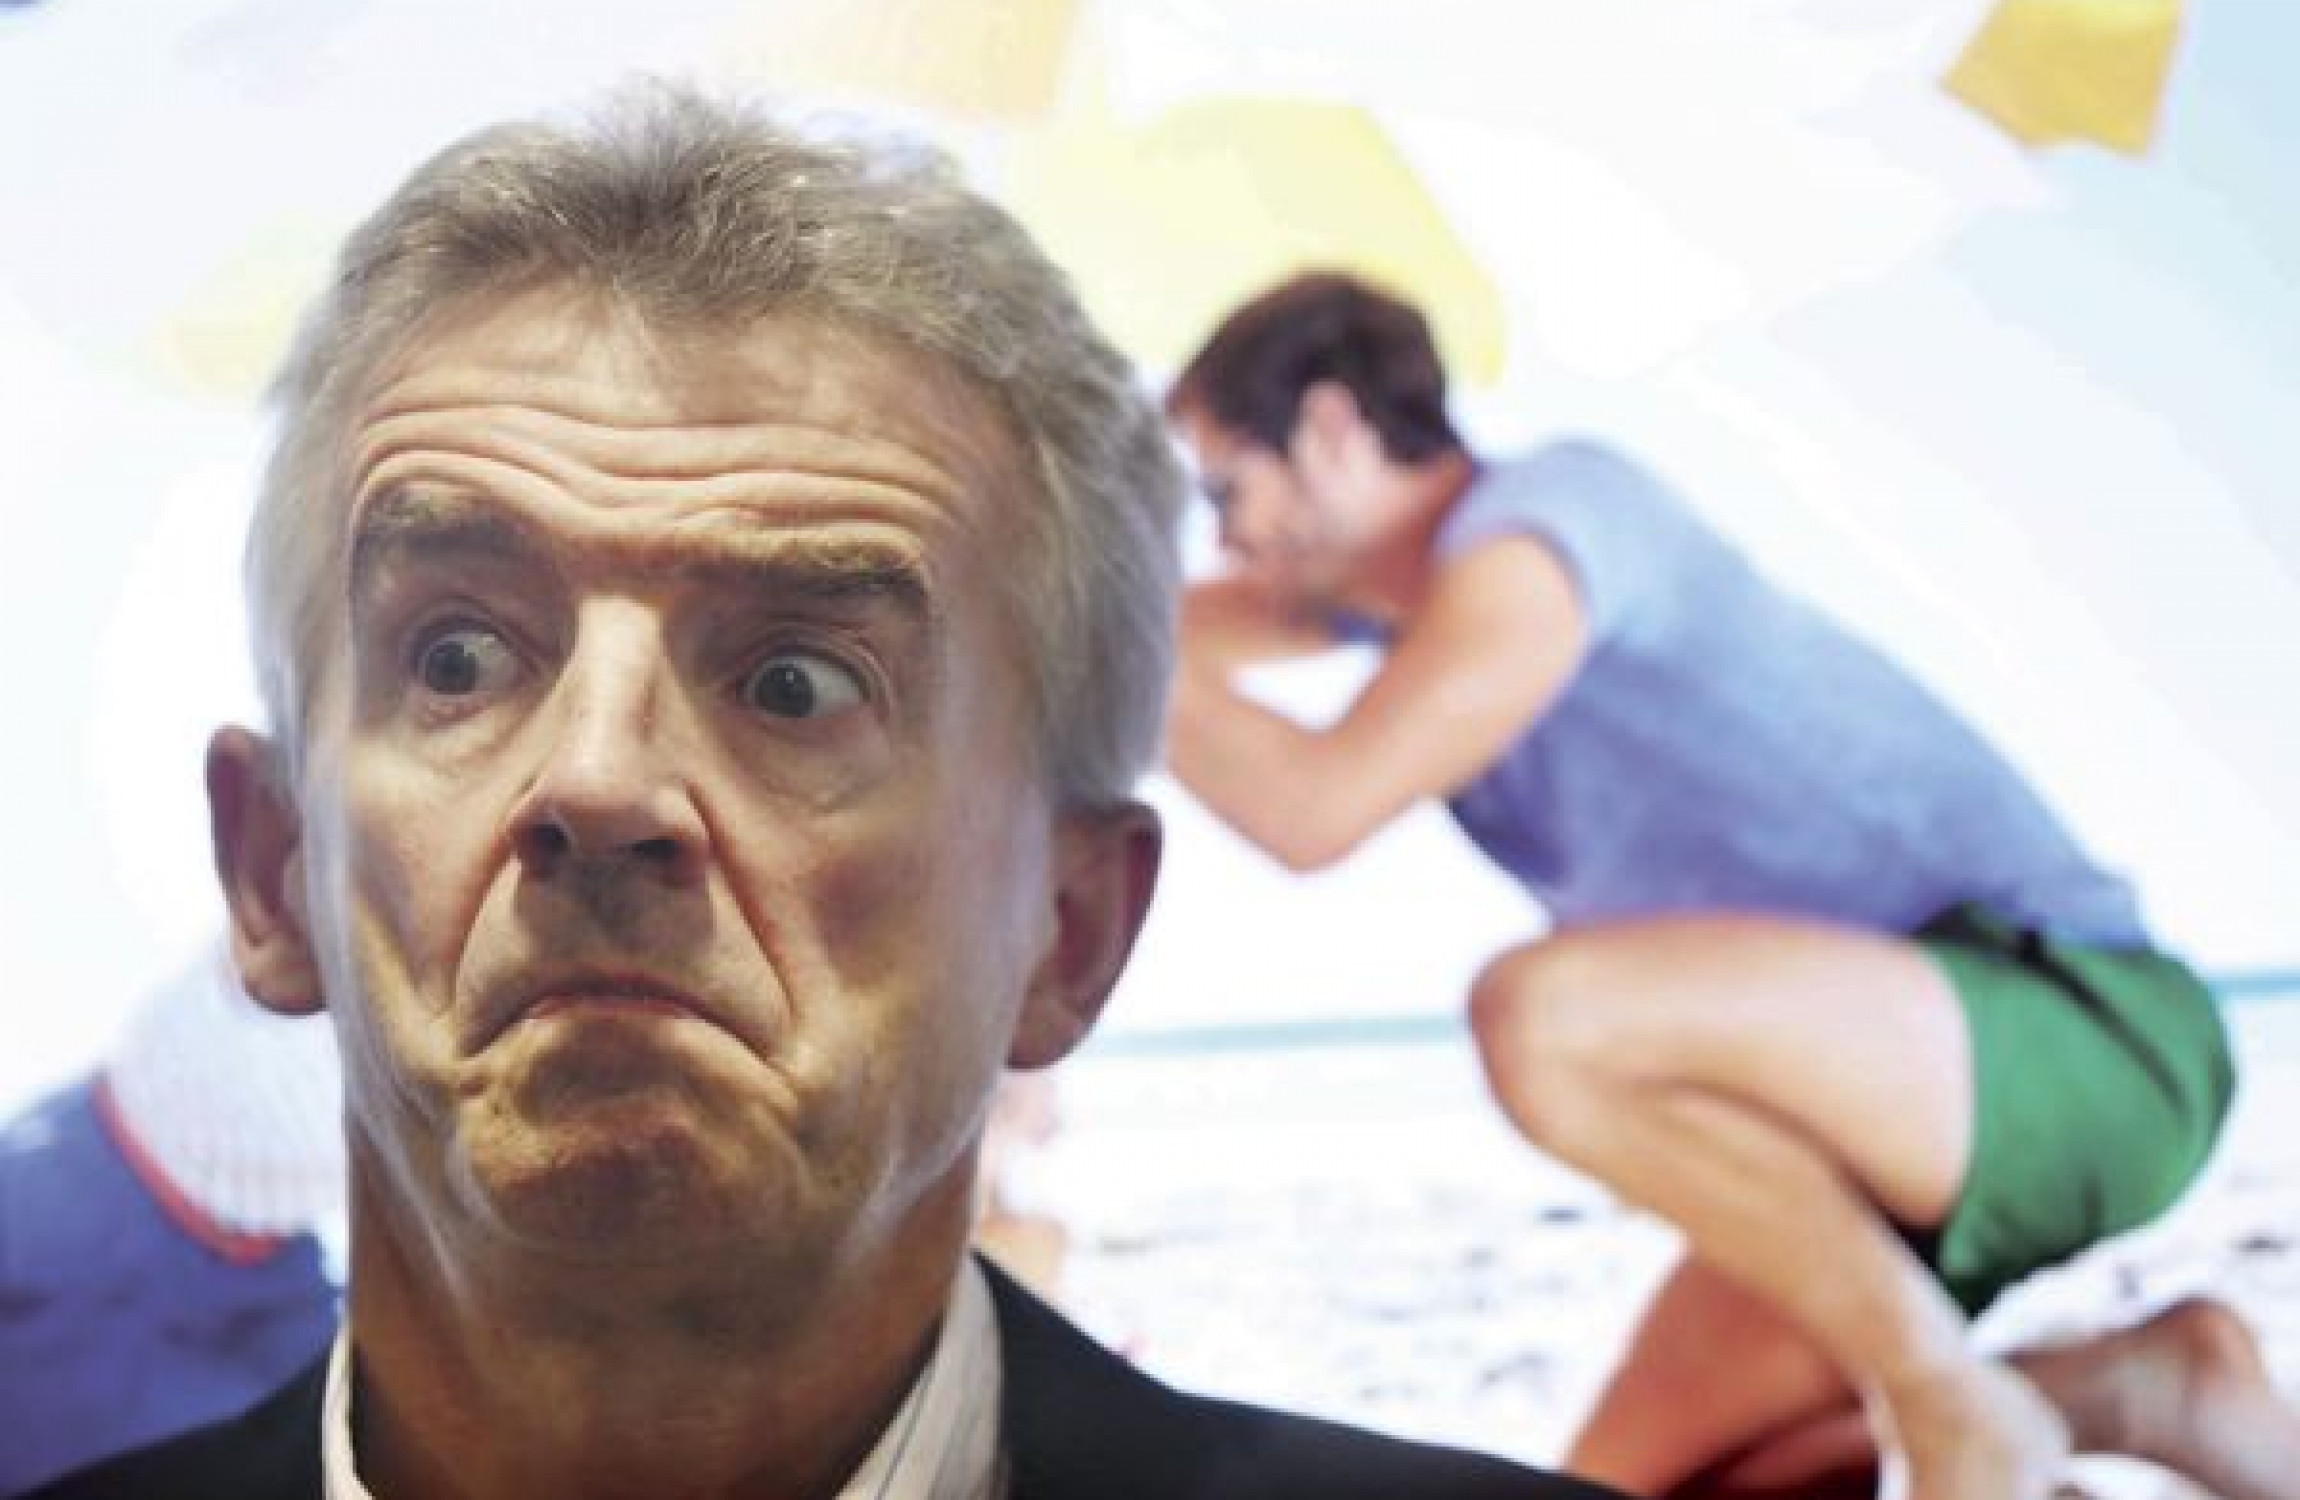 The head of Ryanair has offered the pilots better pay